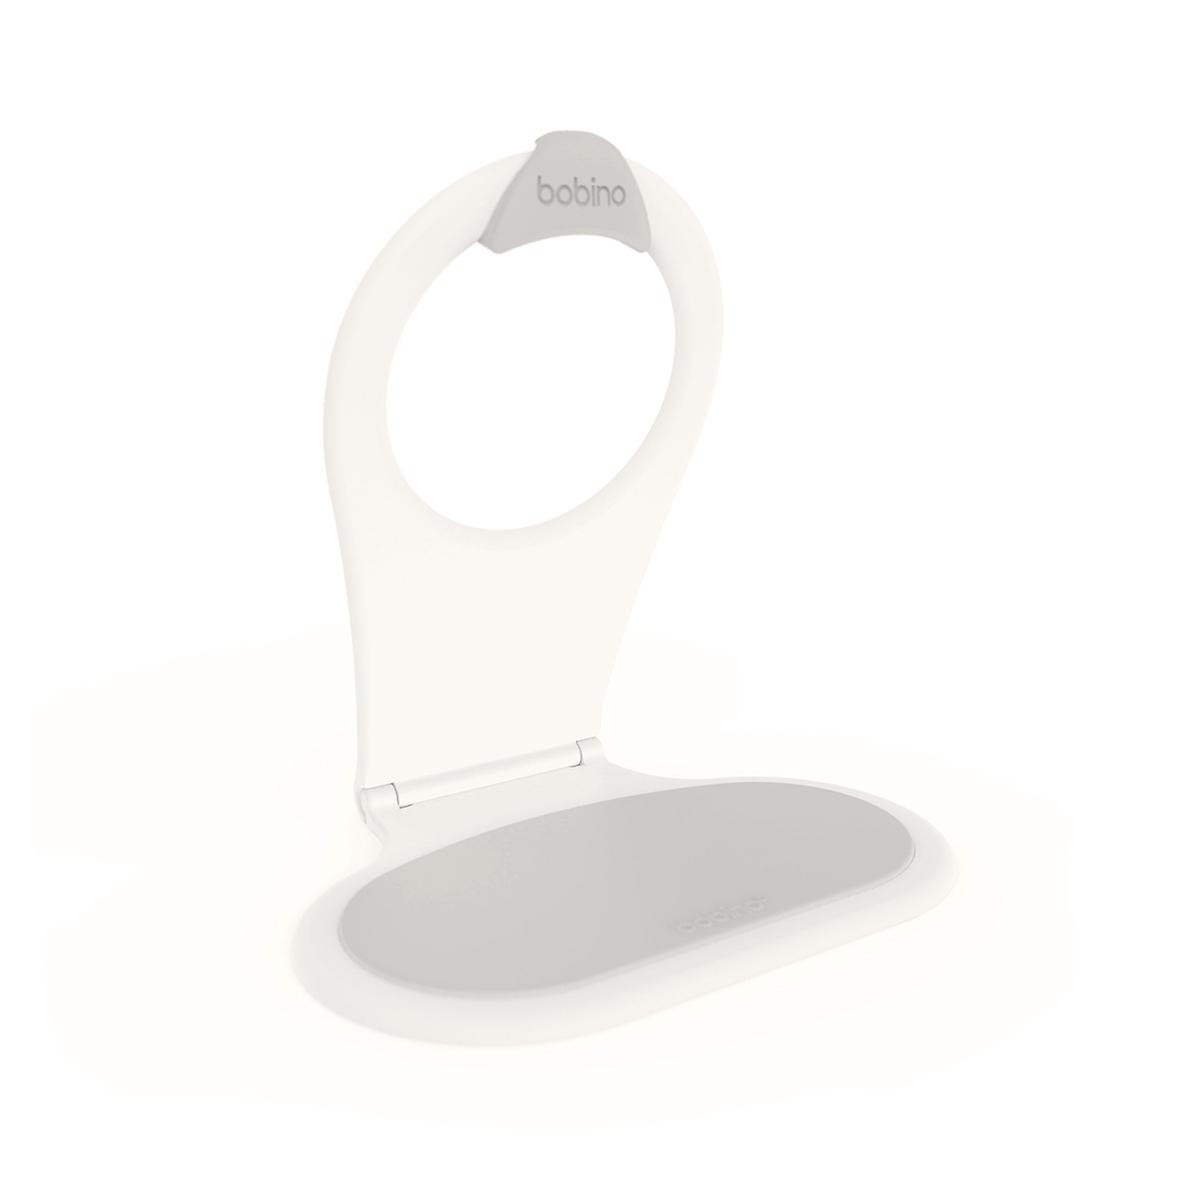 bobino Cream Folding Phone Holder